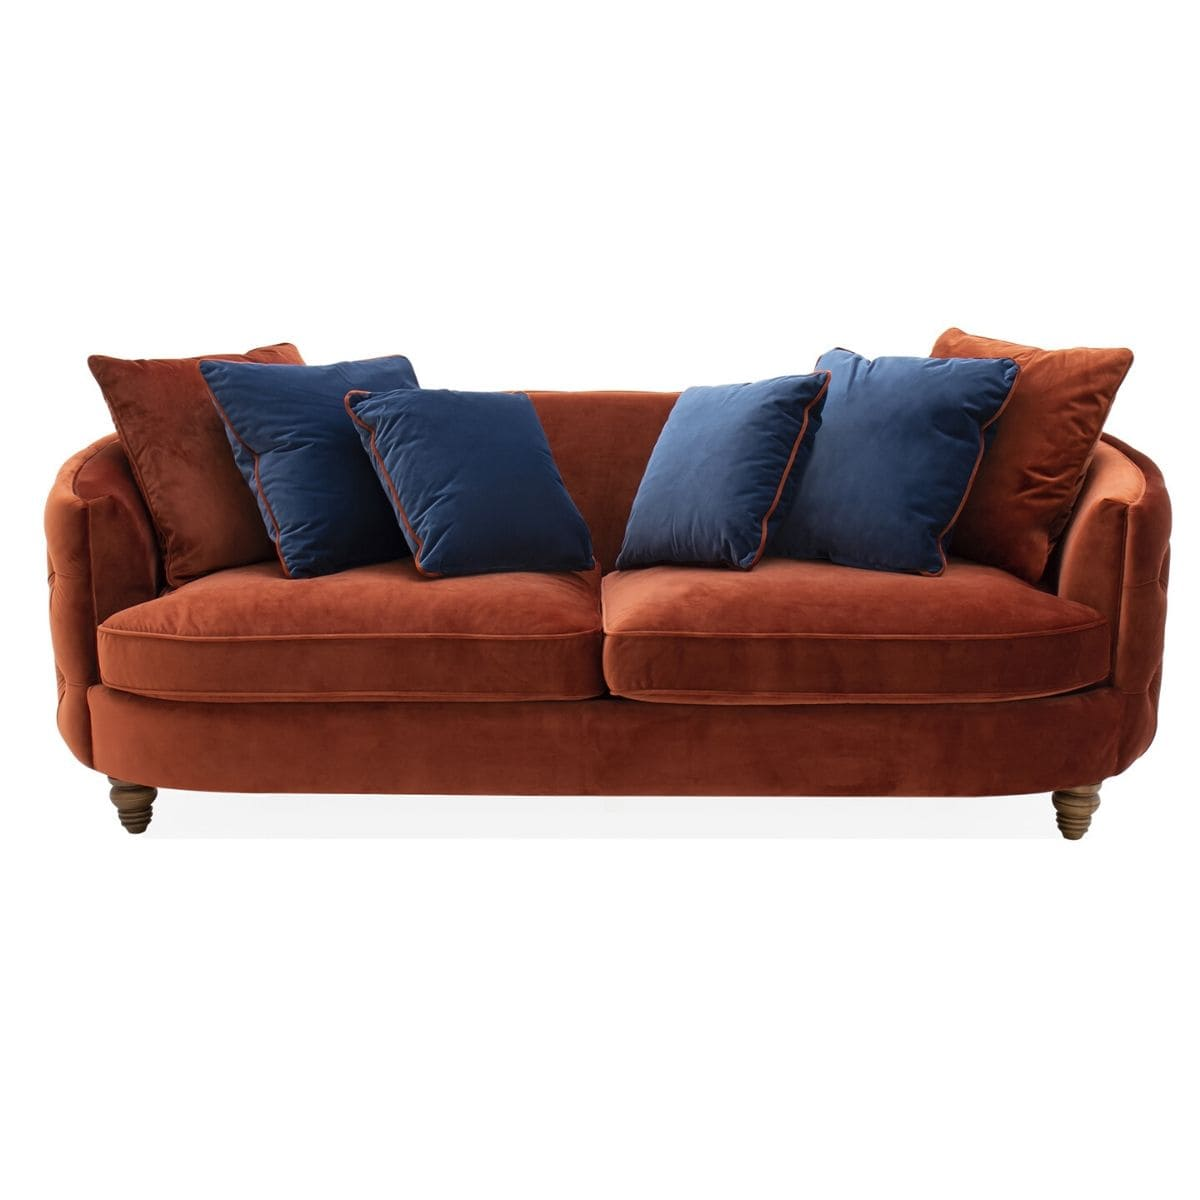 curved button back 3 seater sofa